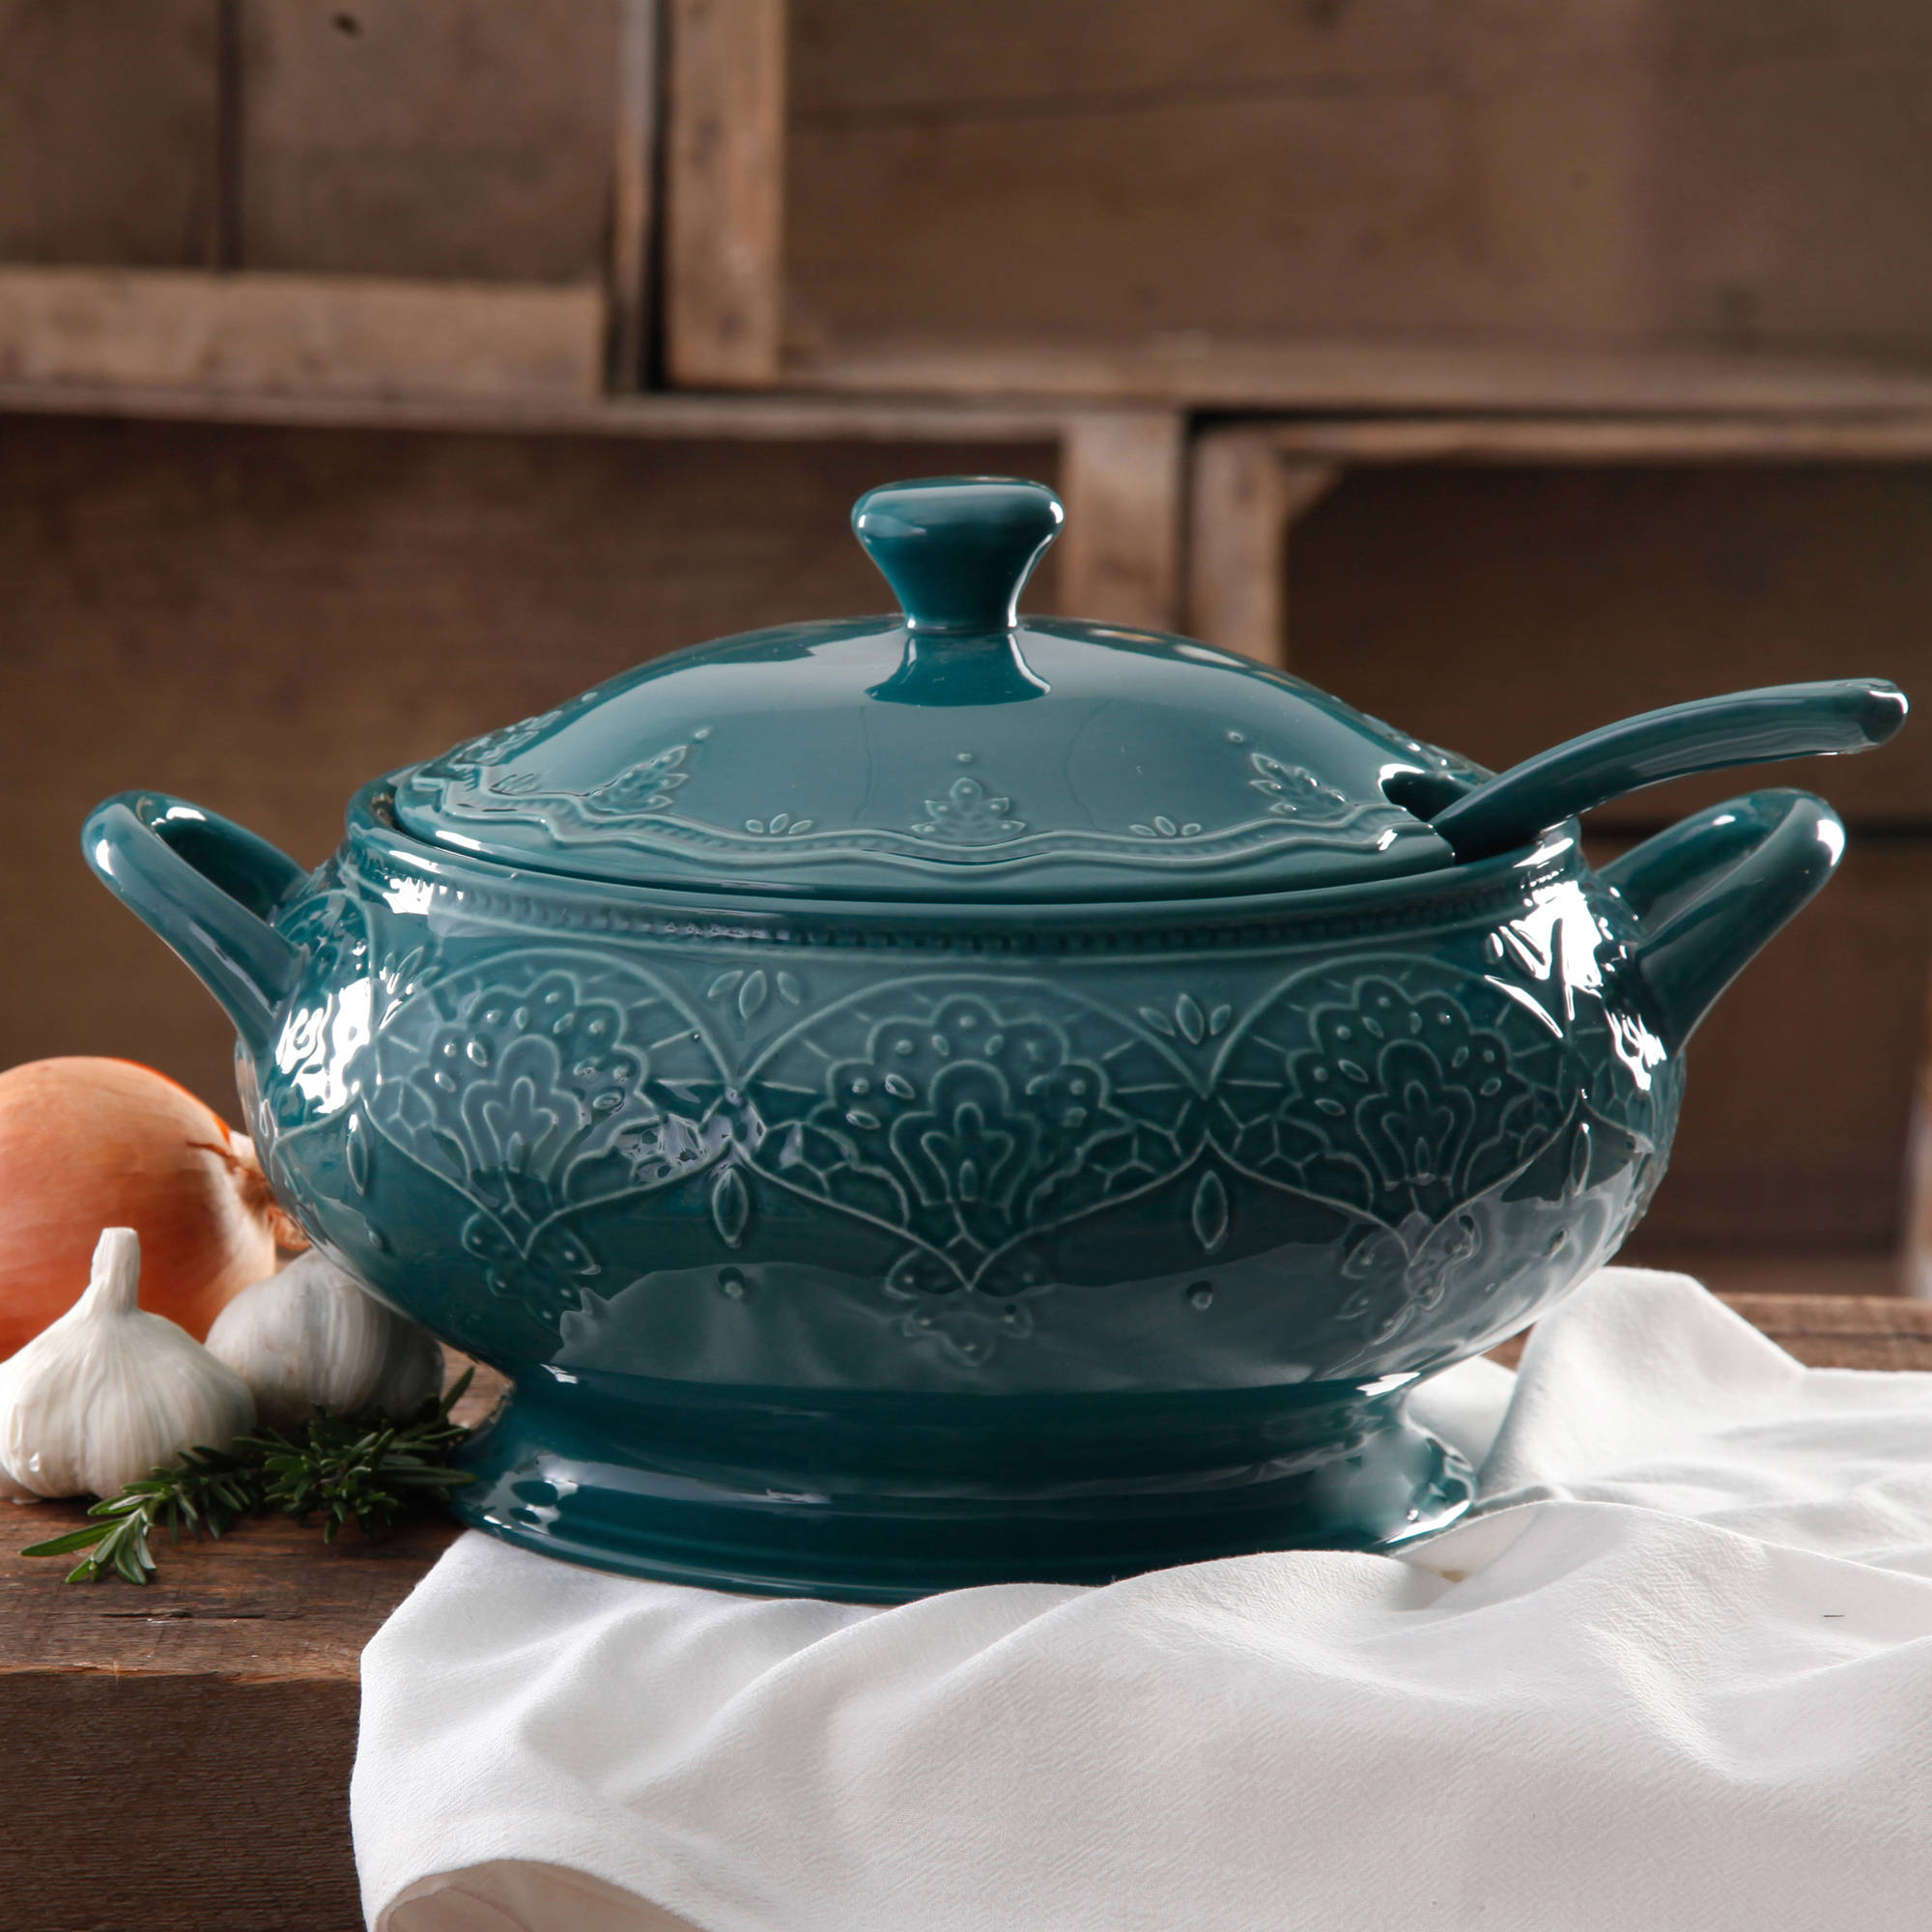 The Pioneer Woman Farmhouse Lace Tureen with Lid and Ladle